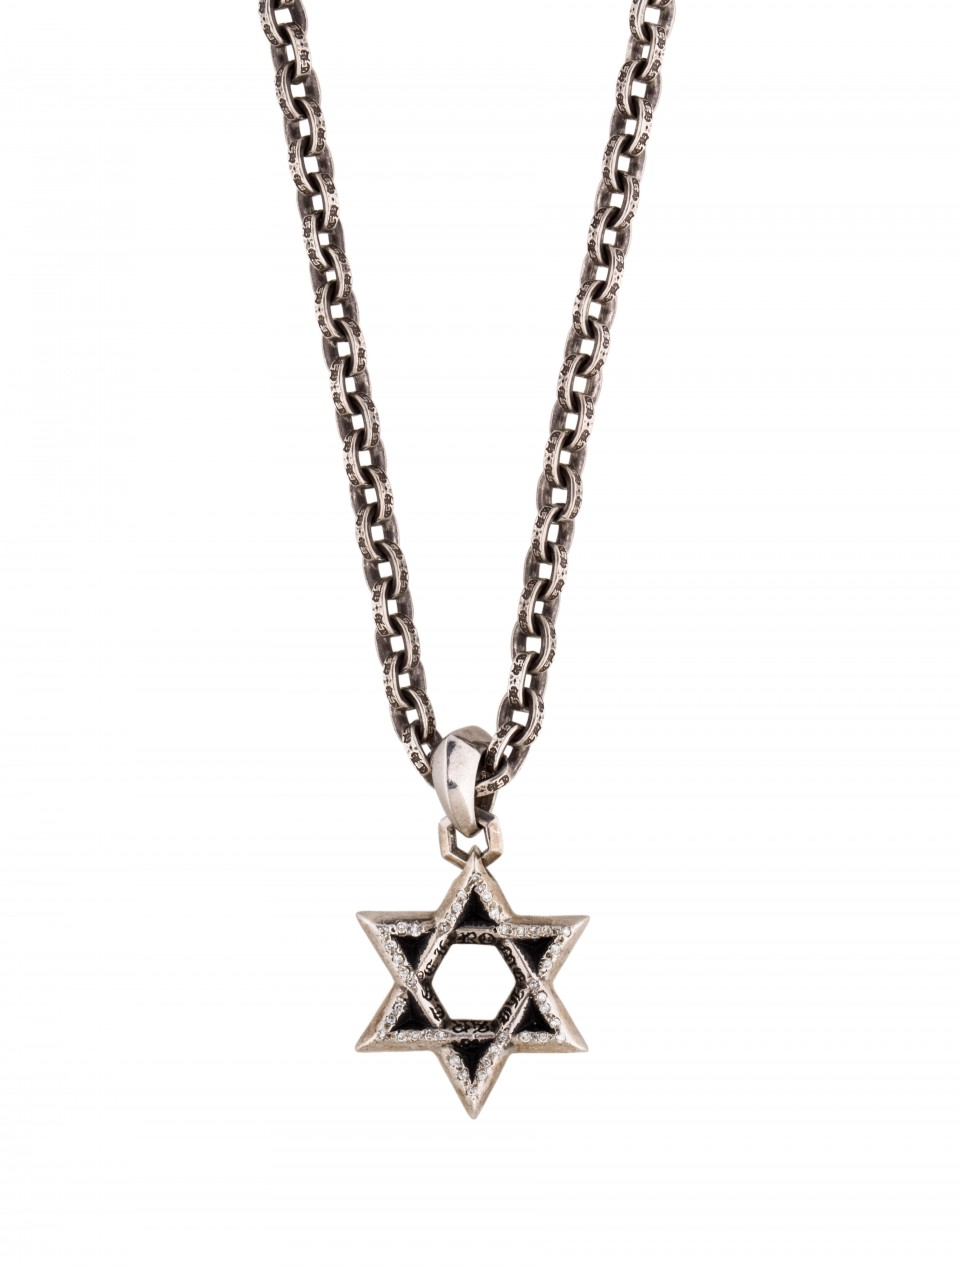 magen pendant rope david of stainless gq necklace o anniyo steel israel star jewish men jewelry a with women bestledlights chain